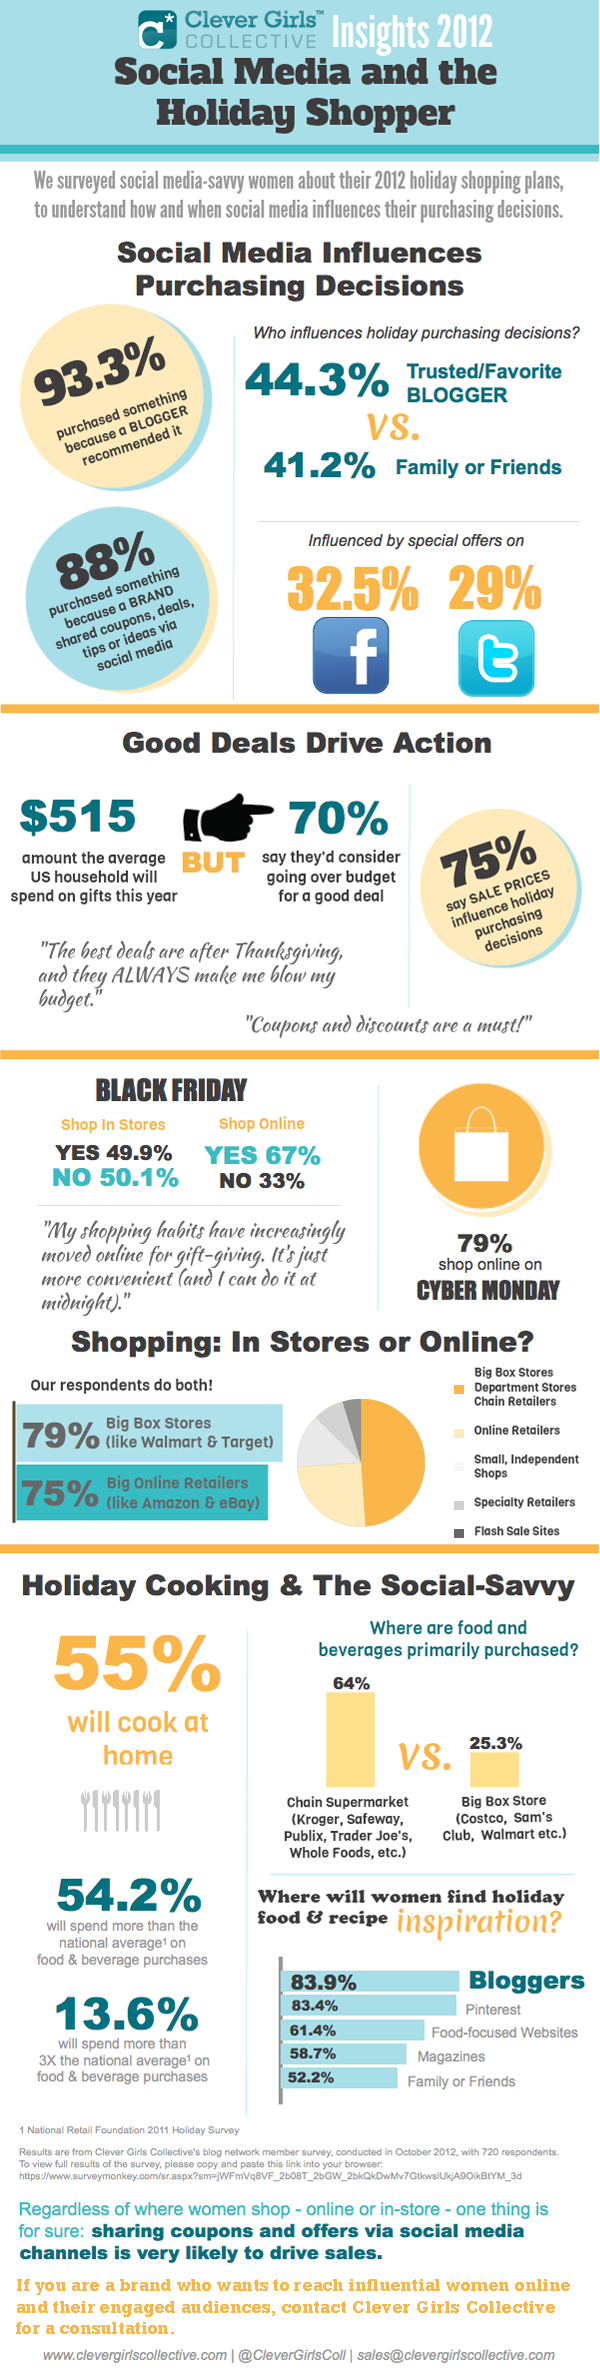 Social Media and the Female Holiday Shopper (Infographic) image Clever Girls Collective 2012 Holiday Shopping INFOGRAPHIC